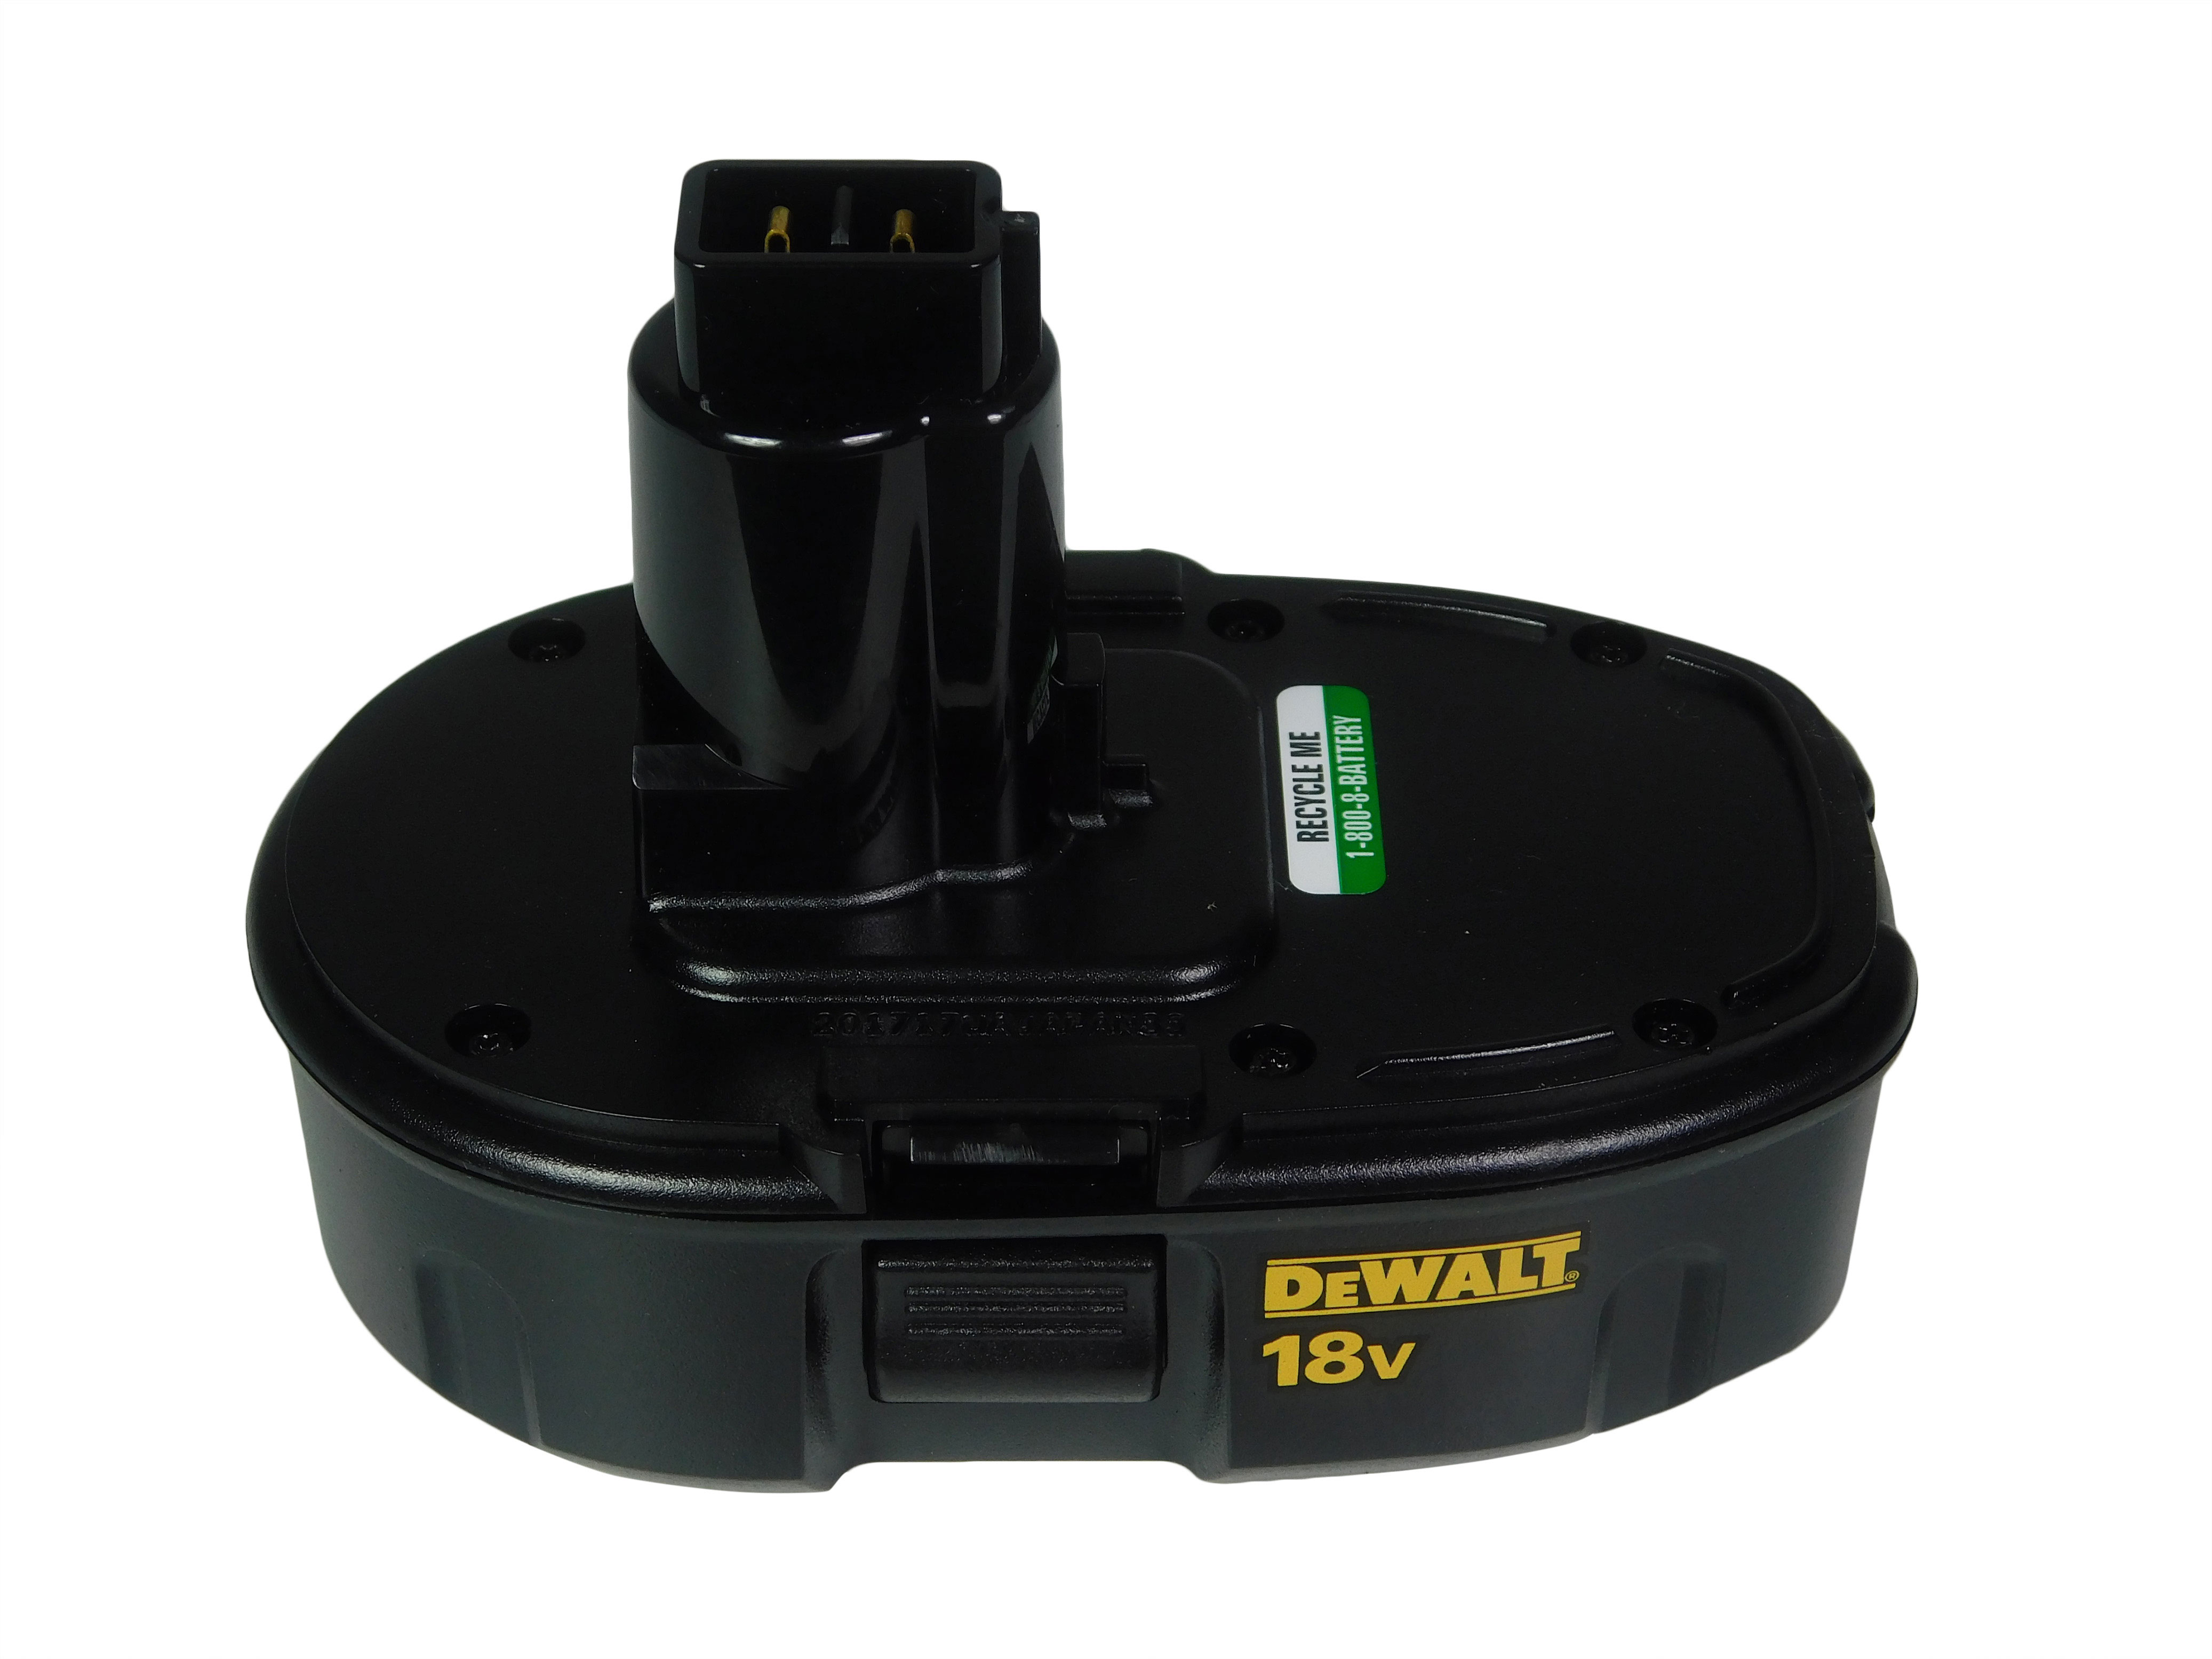 Dewalt-DC9098-18V-Ni-Cad-Battery-Single-Pack-image-14